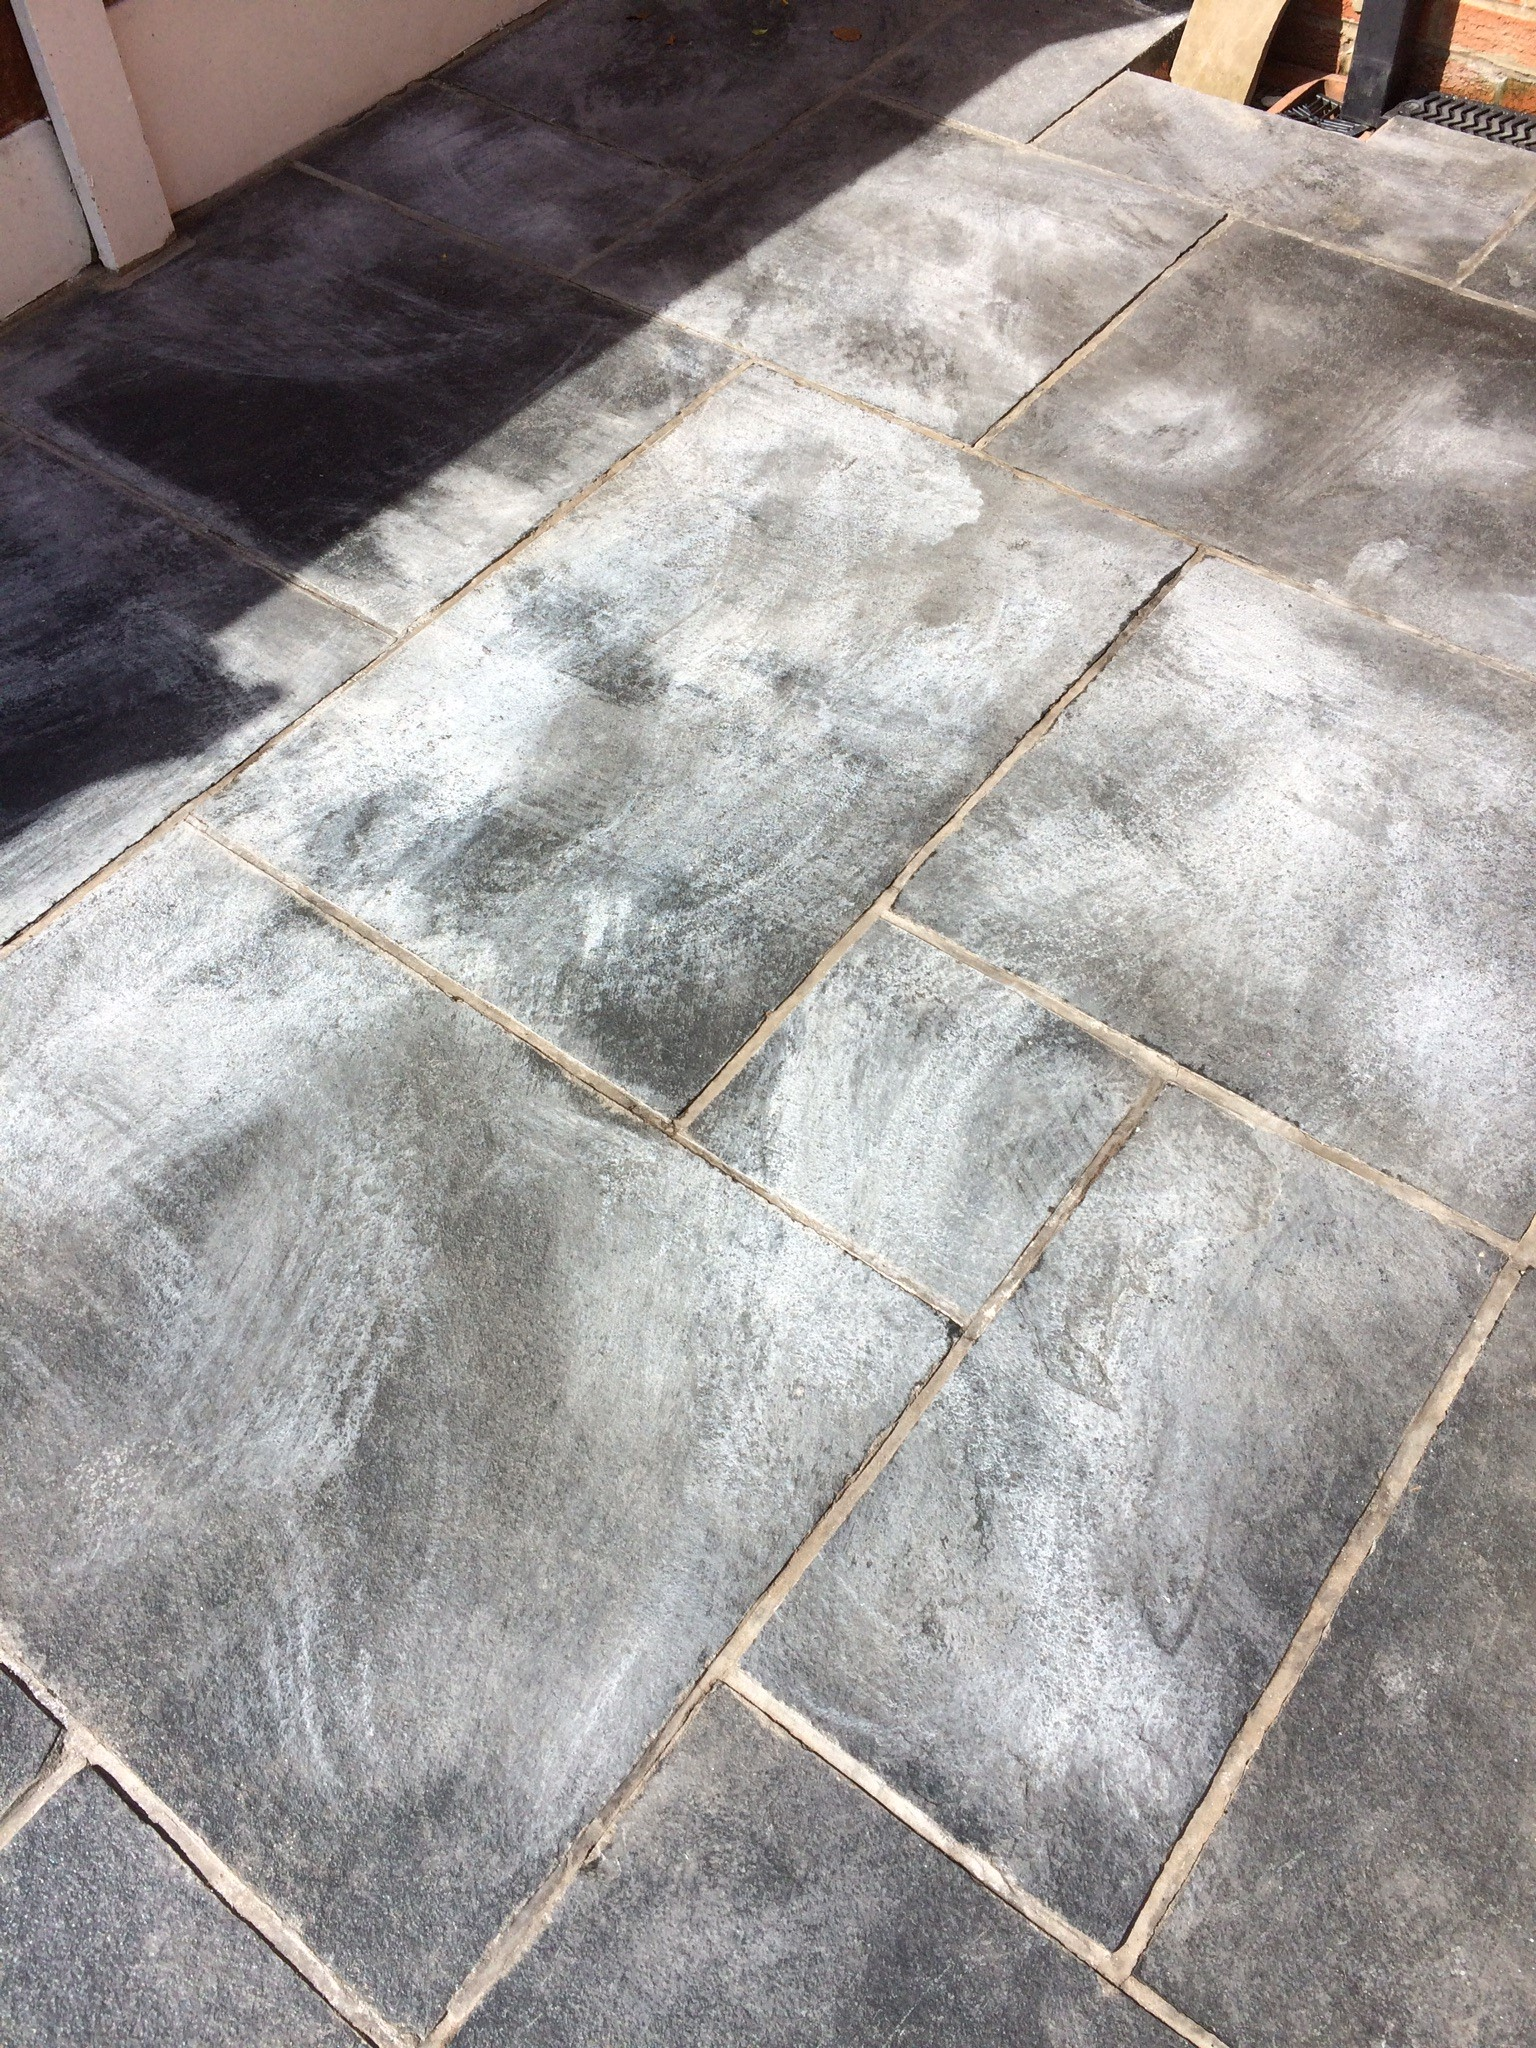 Patio paving nightmare